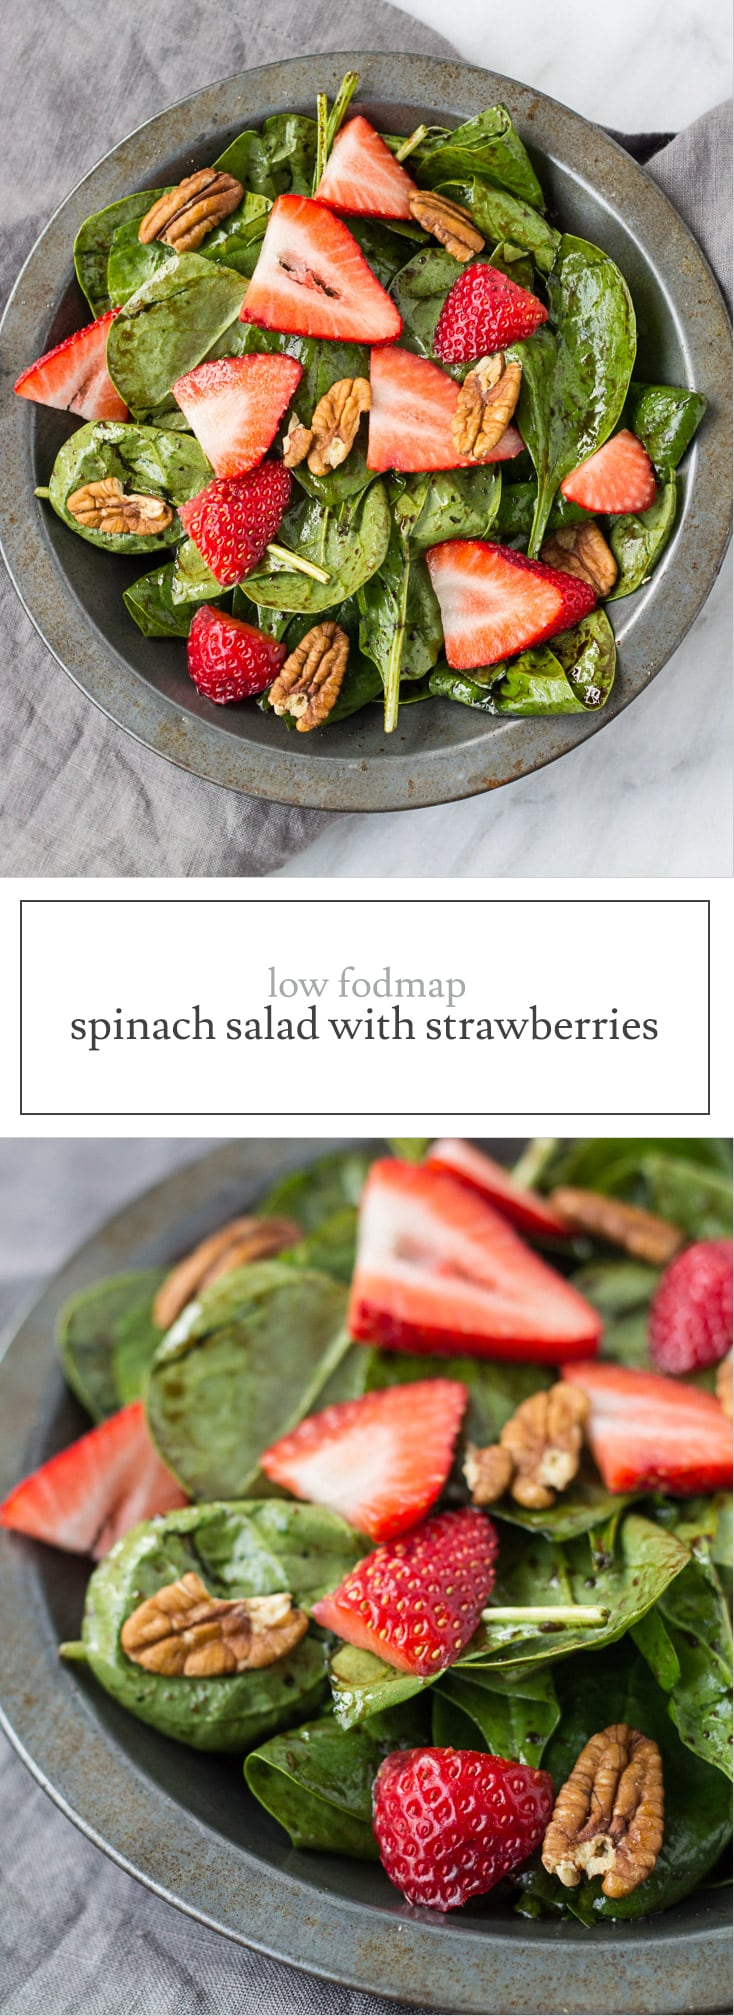 Low FODMAP Spinach Salad with Strawberries features a balsamic vinaigrette, crunchy pecans, and optional feta cheese.